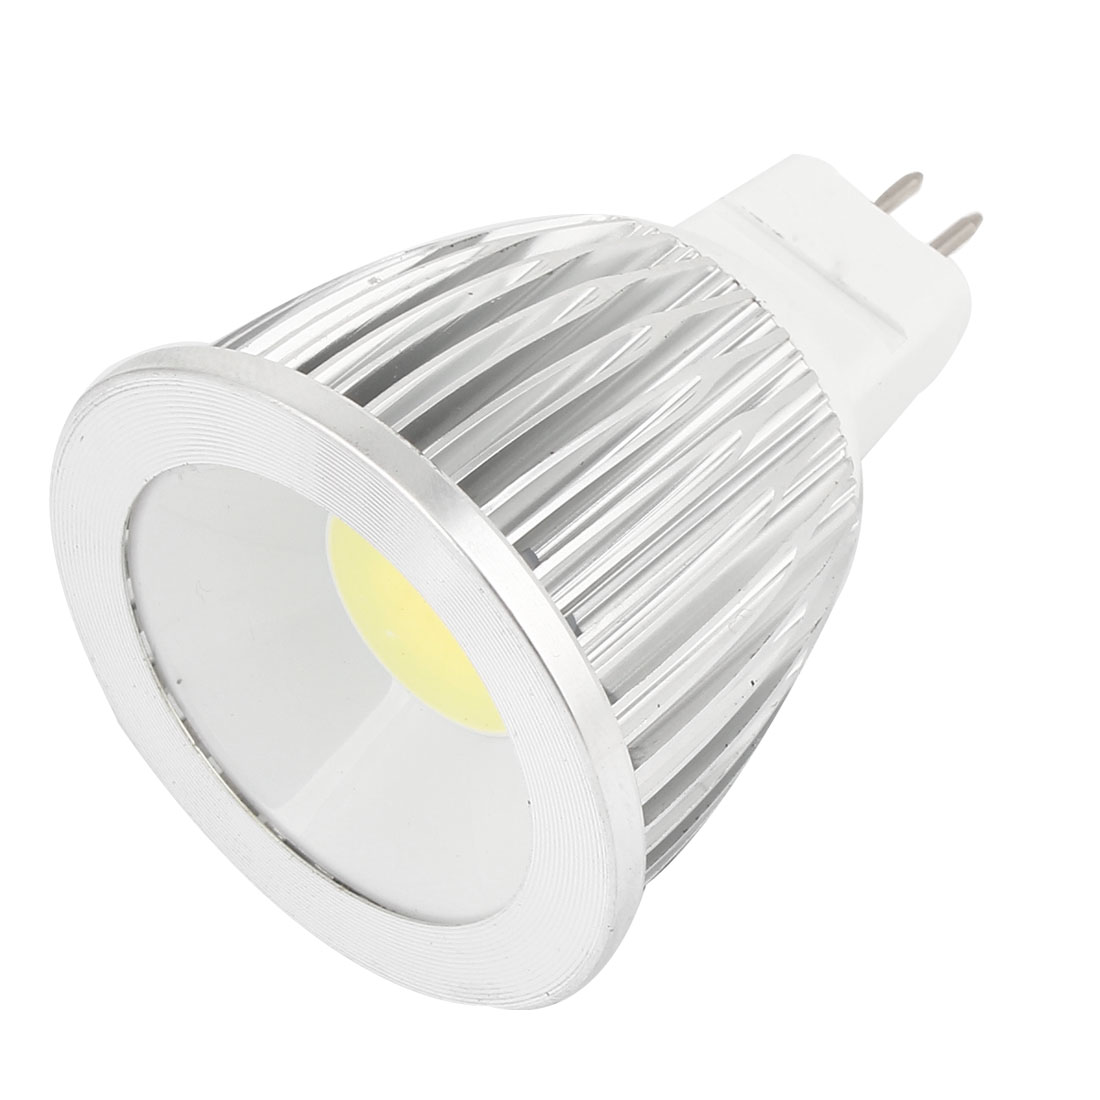 AC 12V 9W MR16 Non-dimmable Cool White Light COB LED Downlight Ceiling Lamp